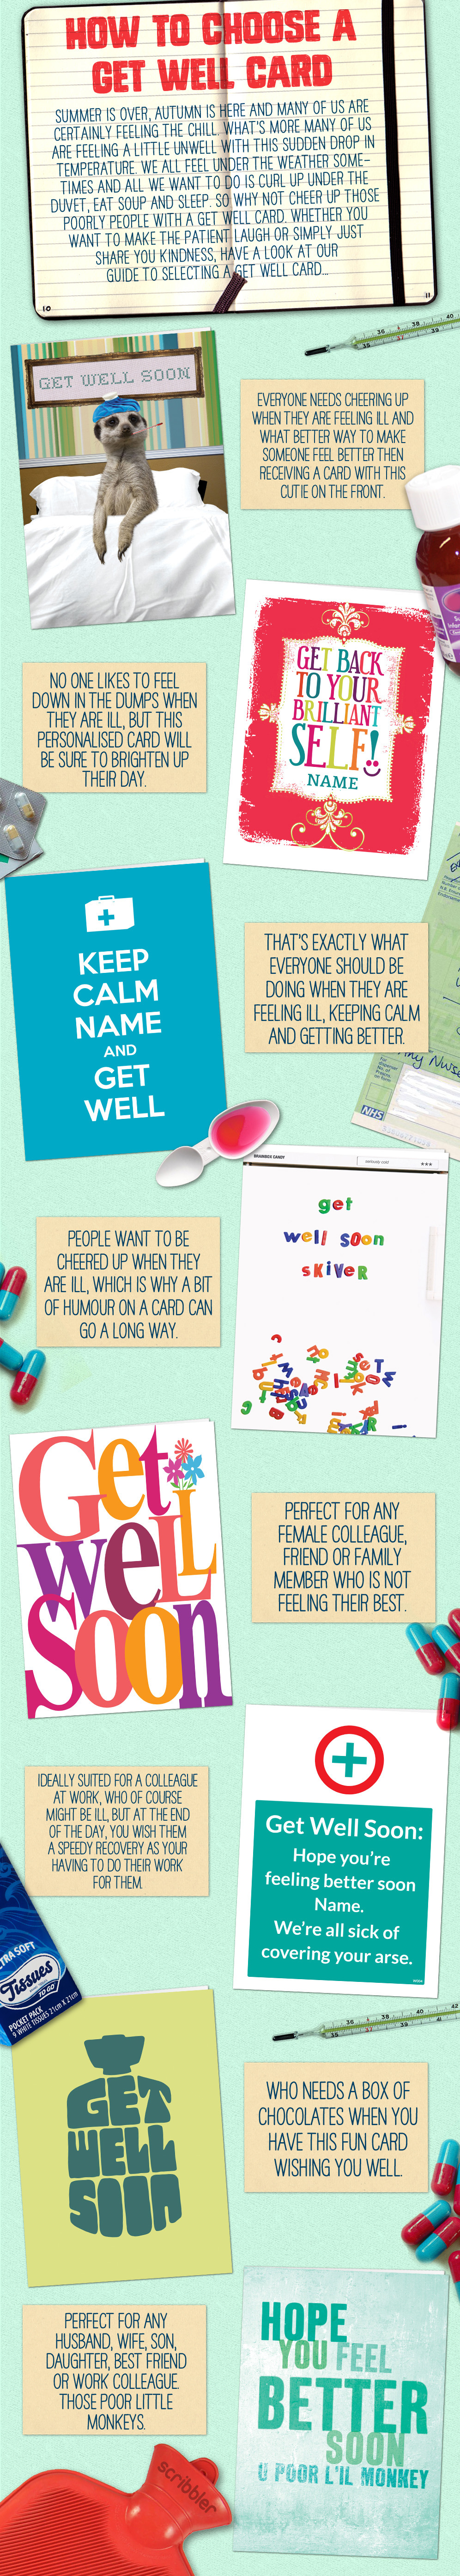 how-to-choose-a-get-well-soon-card_50aa11e42a135